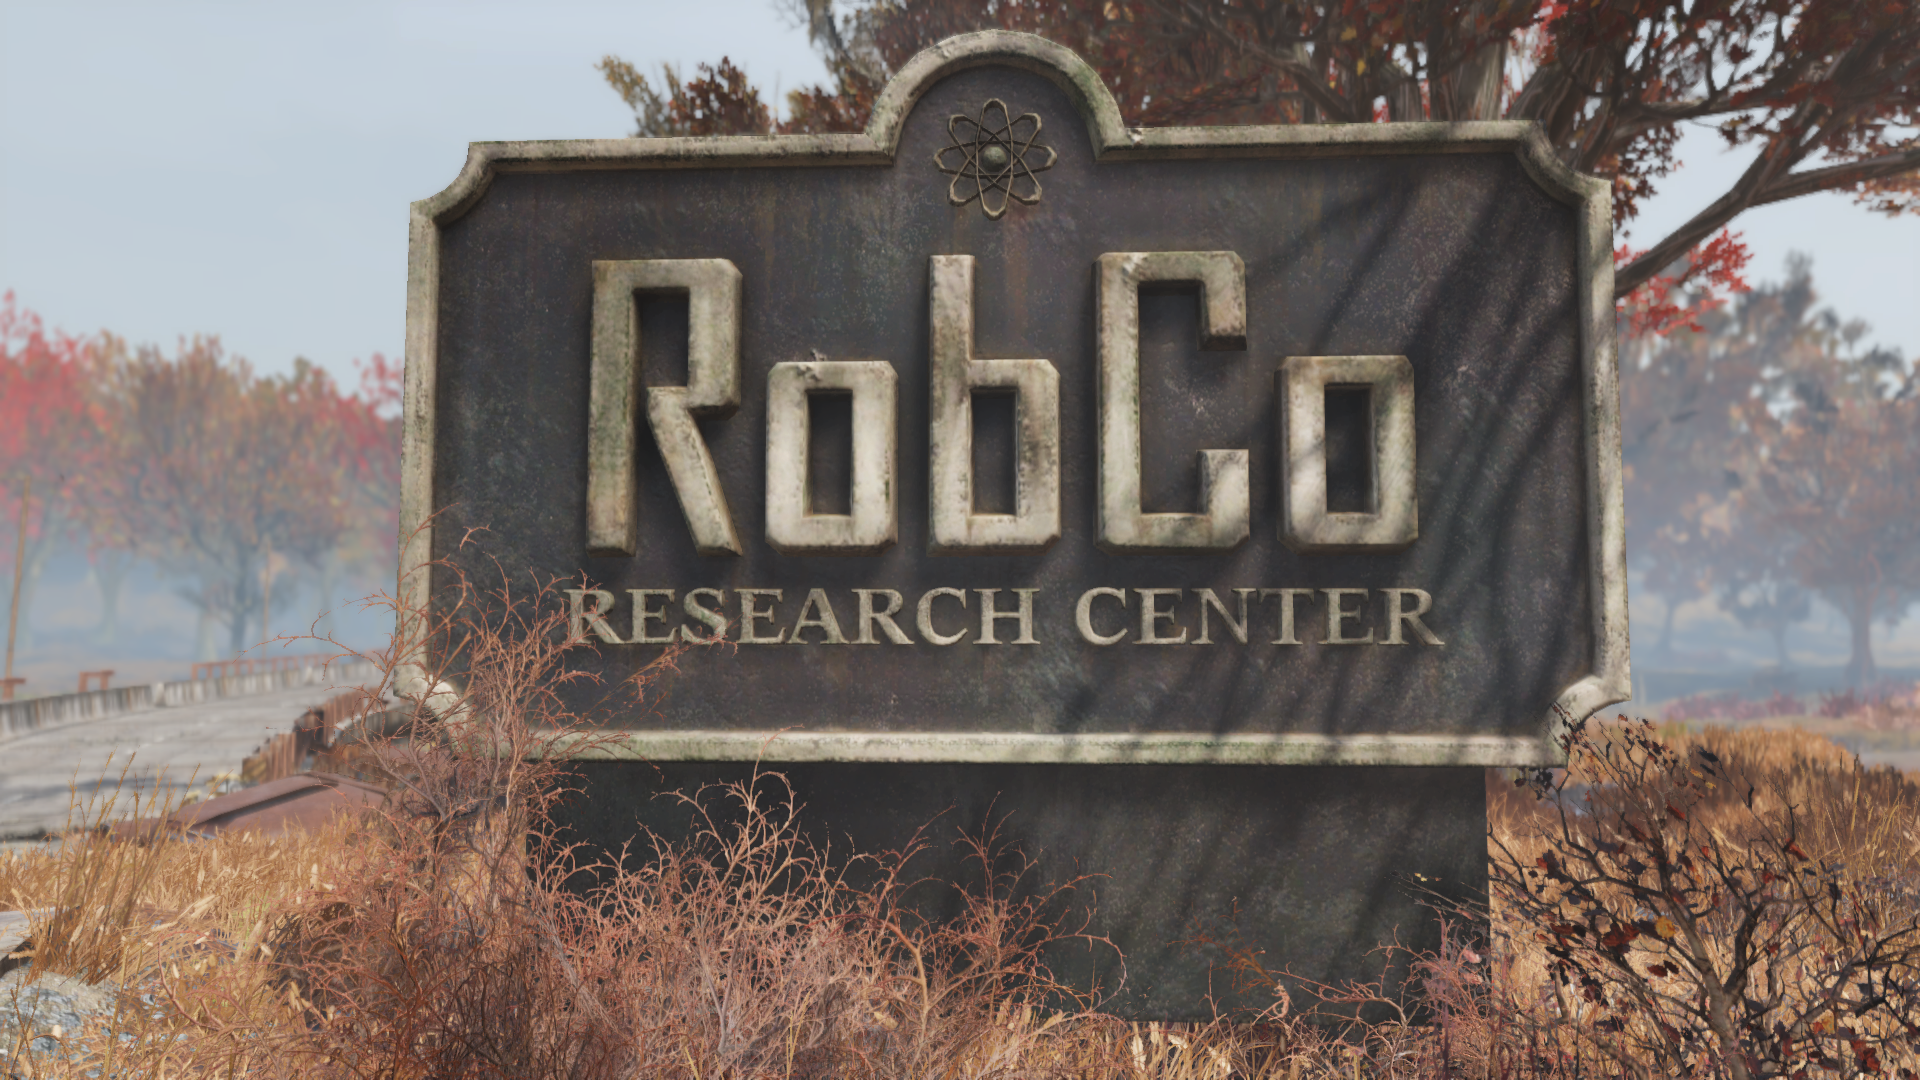 FO76 RobCo Research Center sign